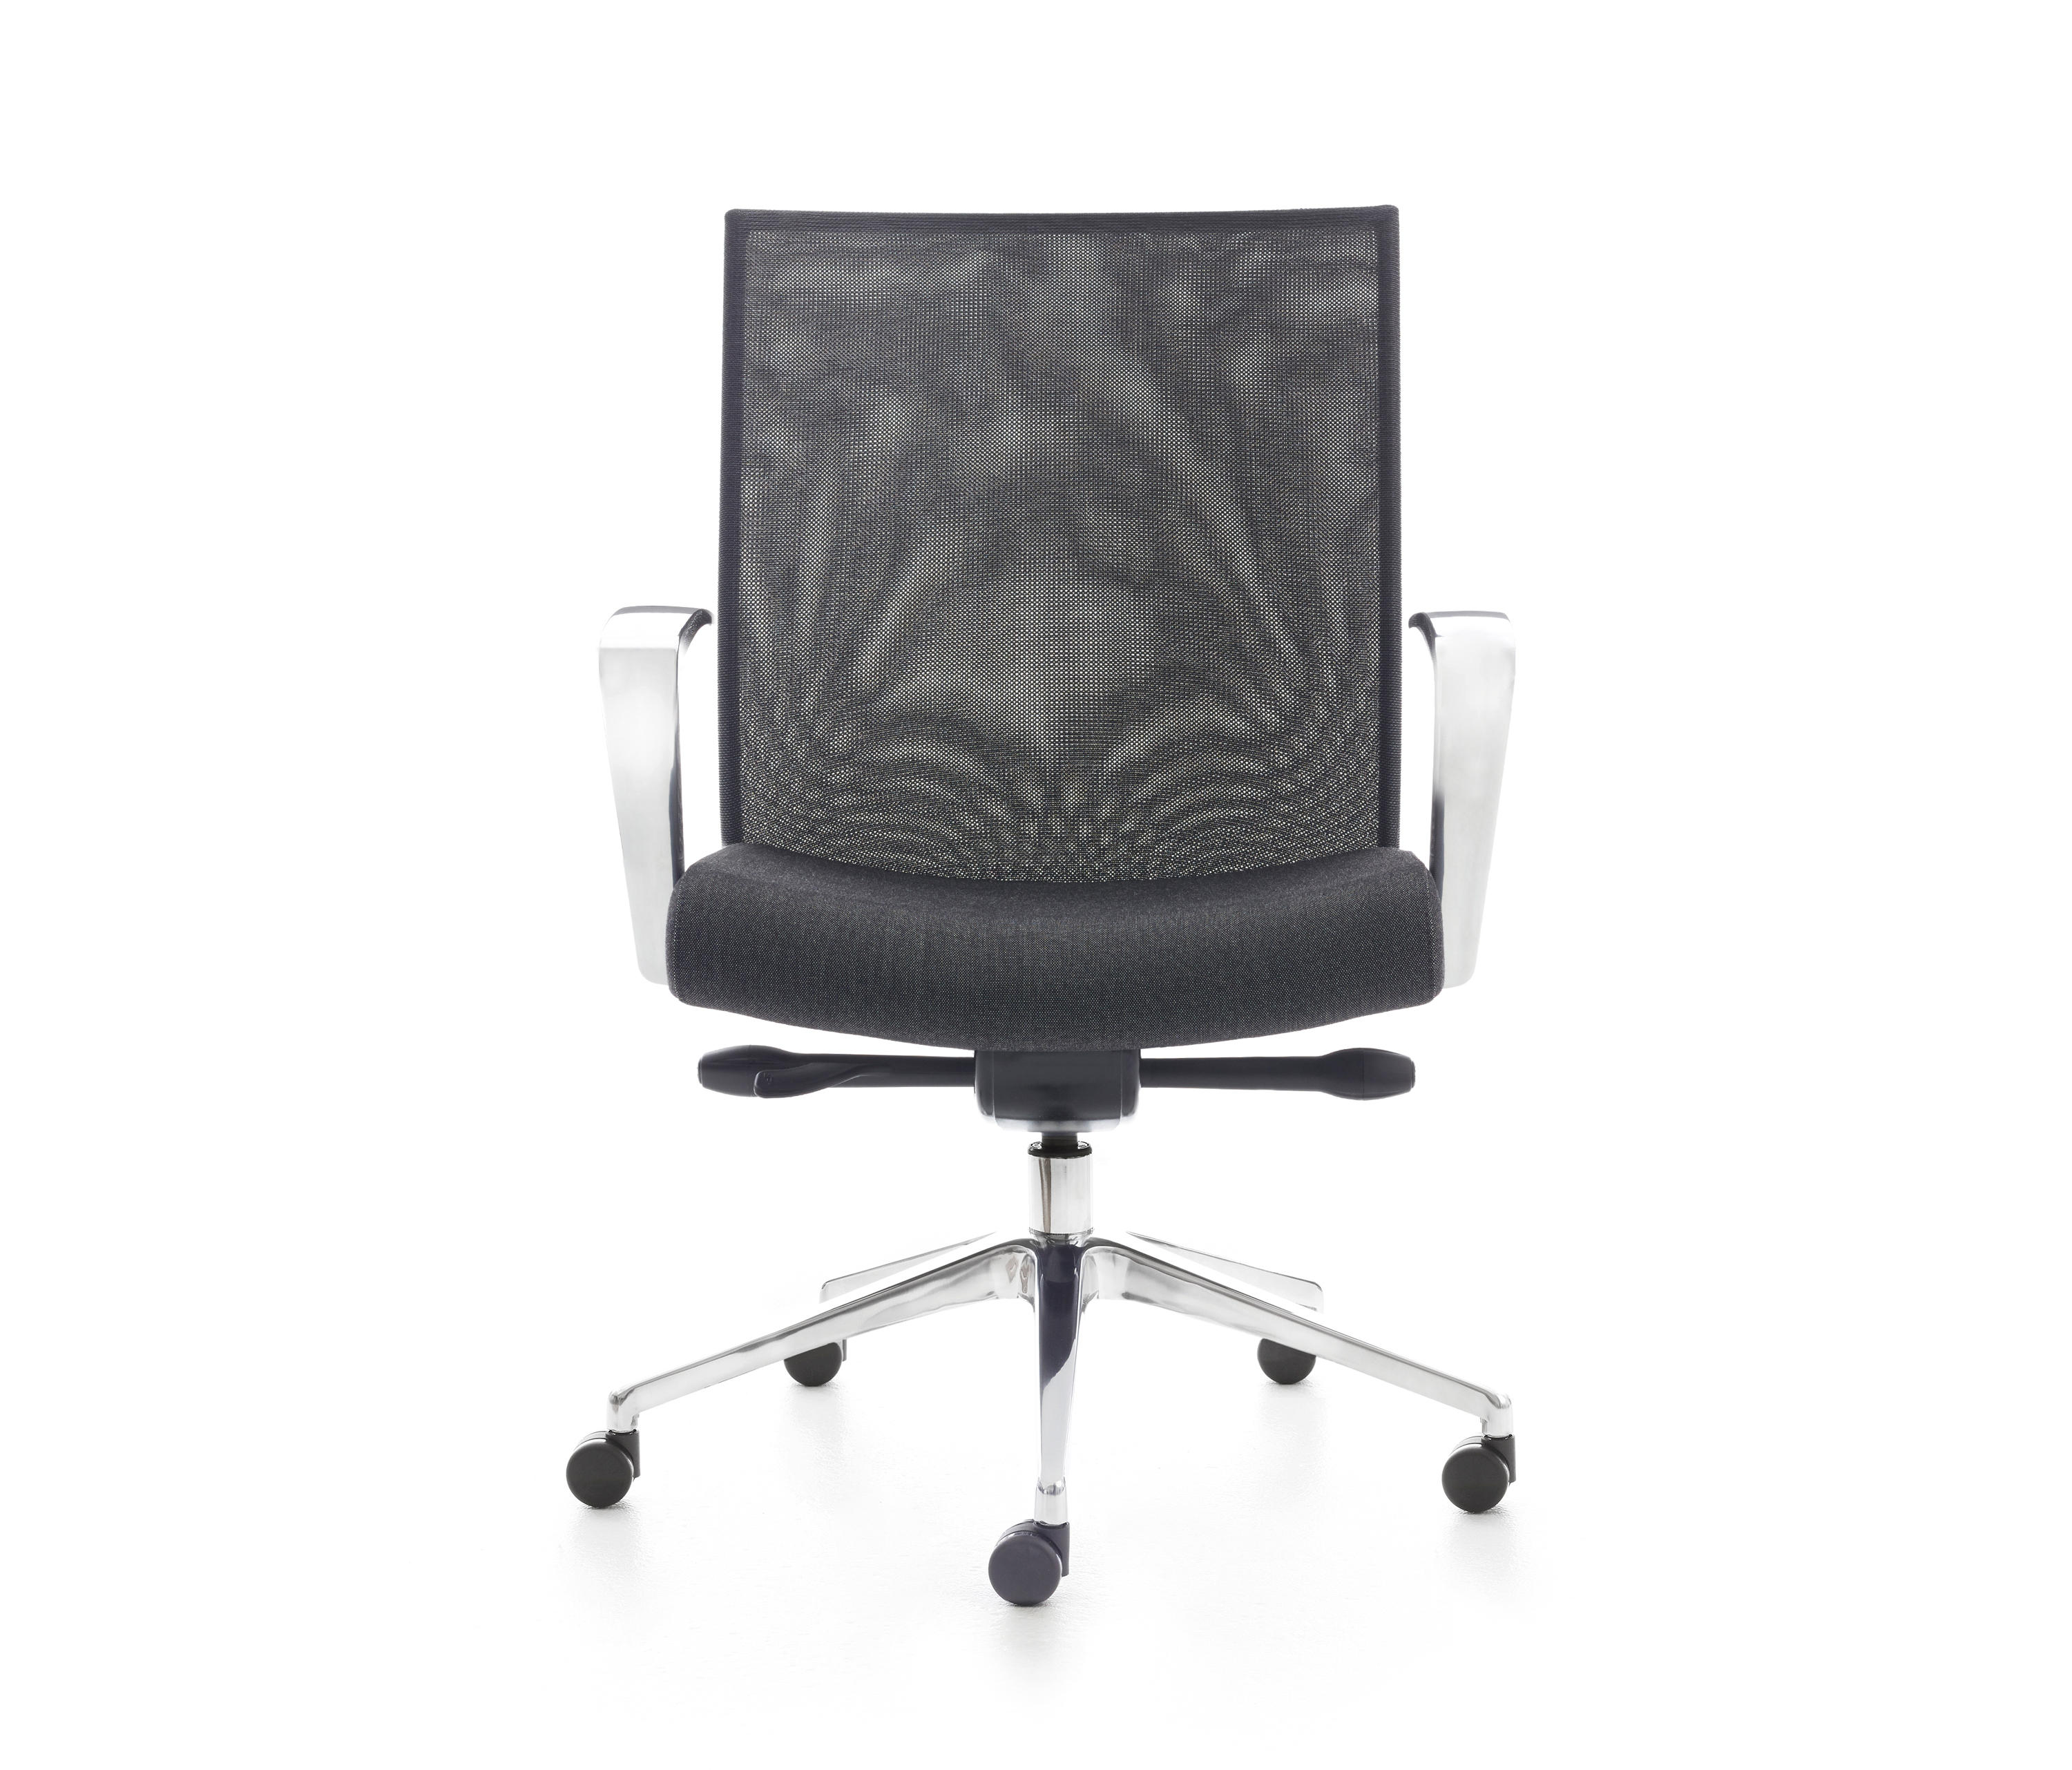 Stylex Office Chairs INSIGHT MESH - Task chairs from Stylex | Architonic